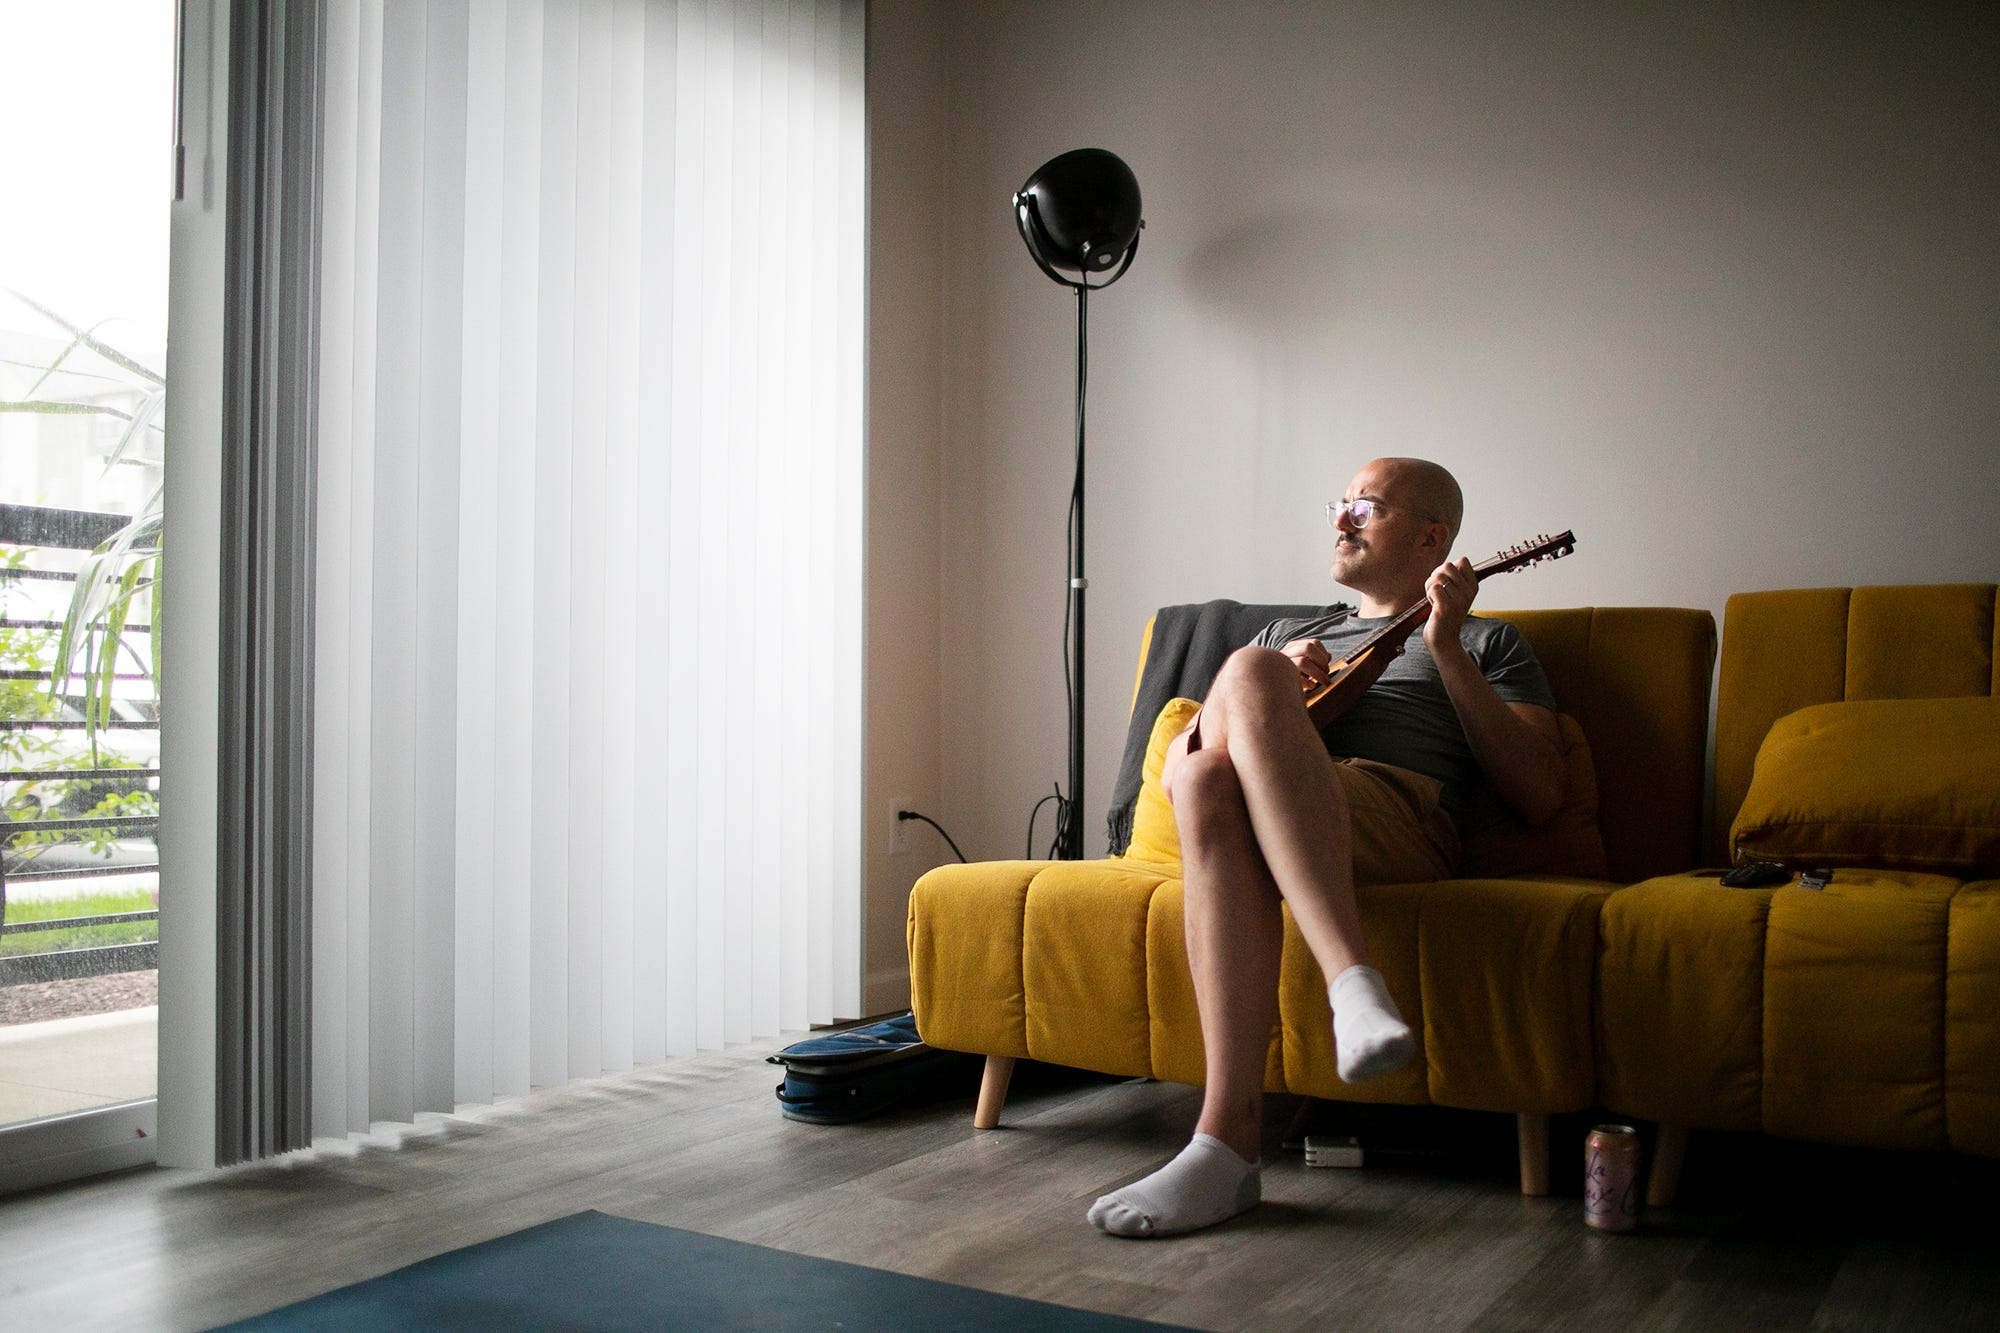 Chris Graham plays a mandolin at home in Westerville after an intense Eye Movement Desensitization and Reprocessing (EMDR) psychotherapy session. Therapy has helped Graham recover repressed memories of being raped by a Columbus priest when he was 14 years old.